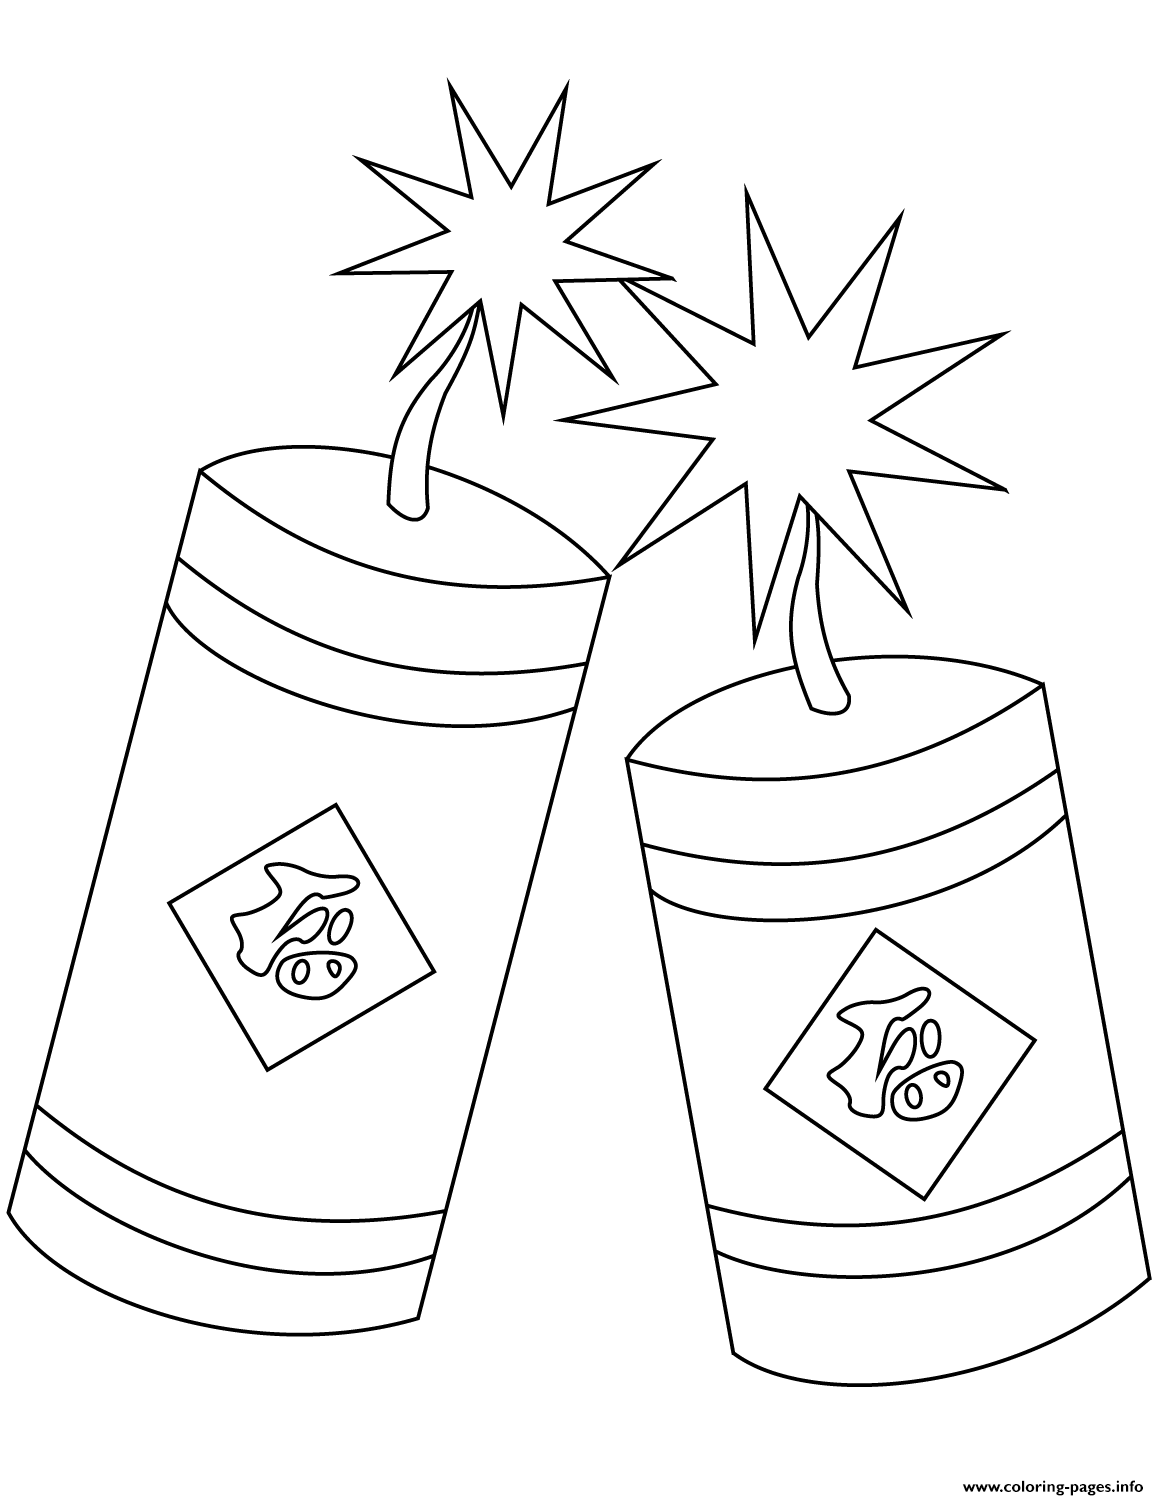 Chinese New Year Firecrackers Coloring Pages